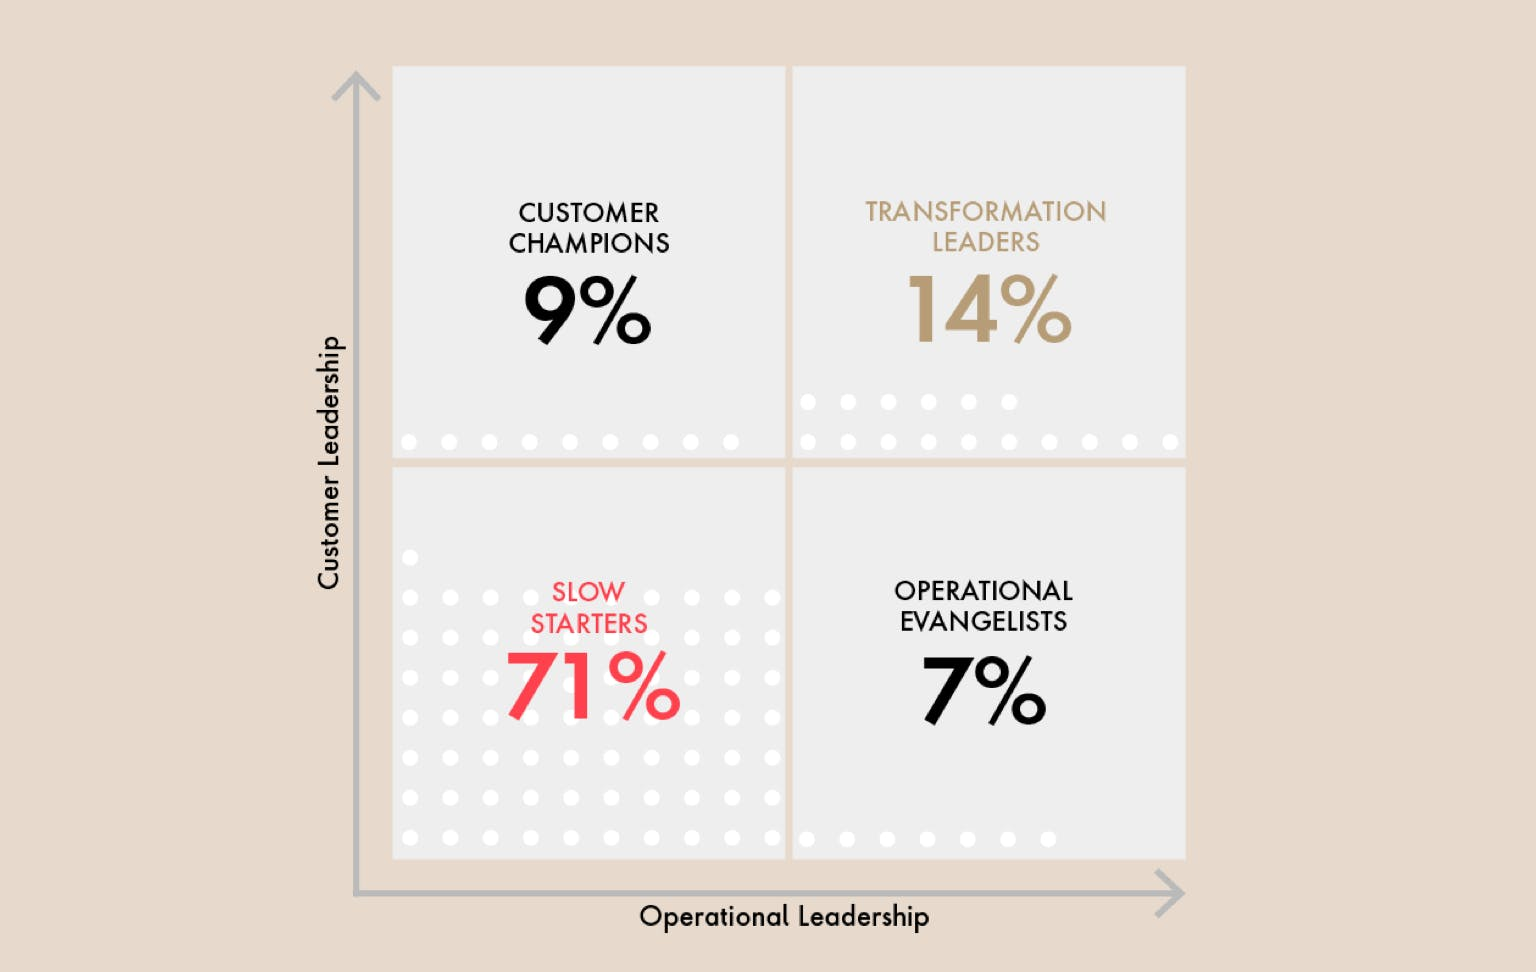 Who are the Transformation leaders?